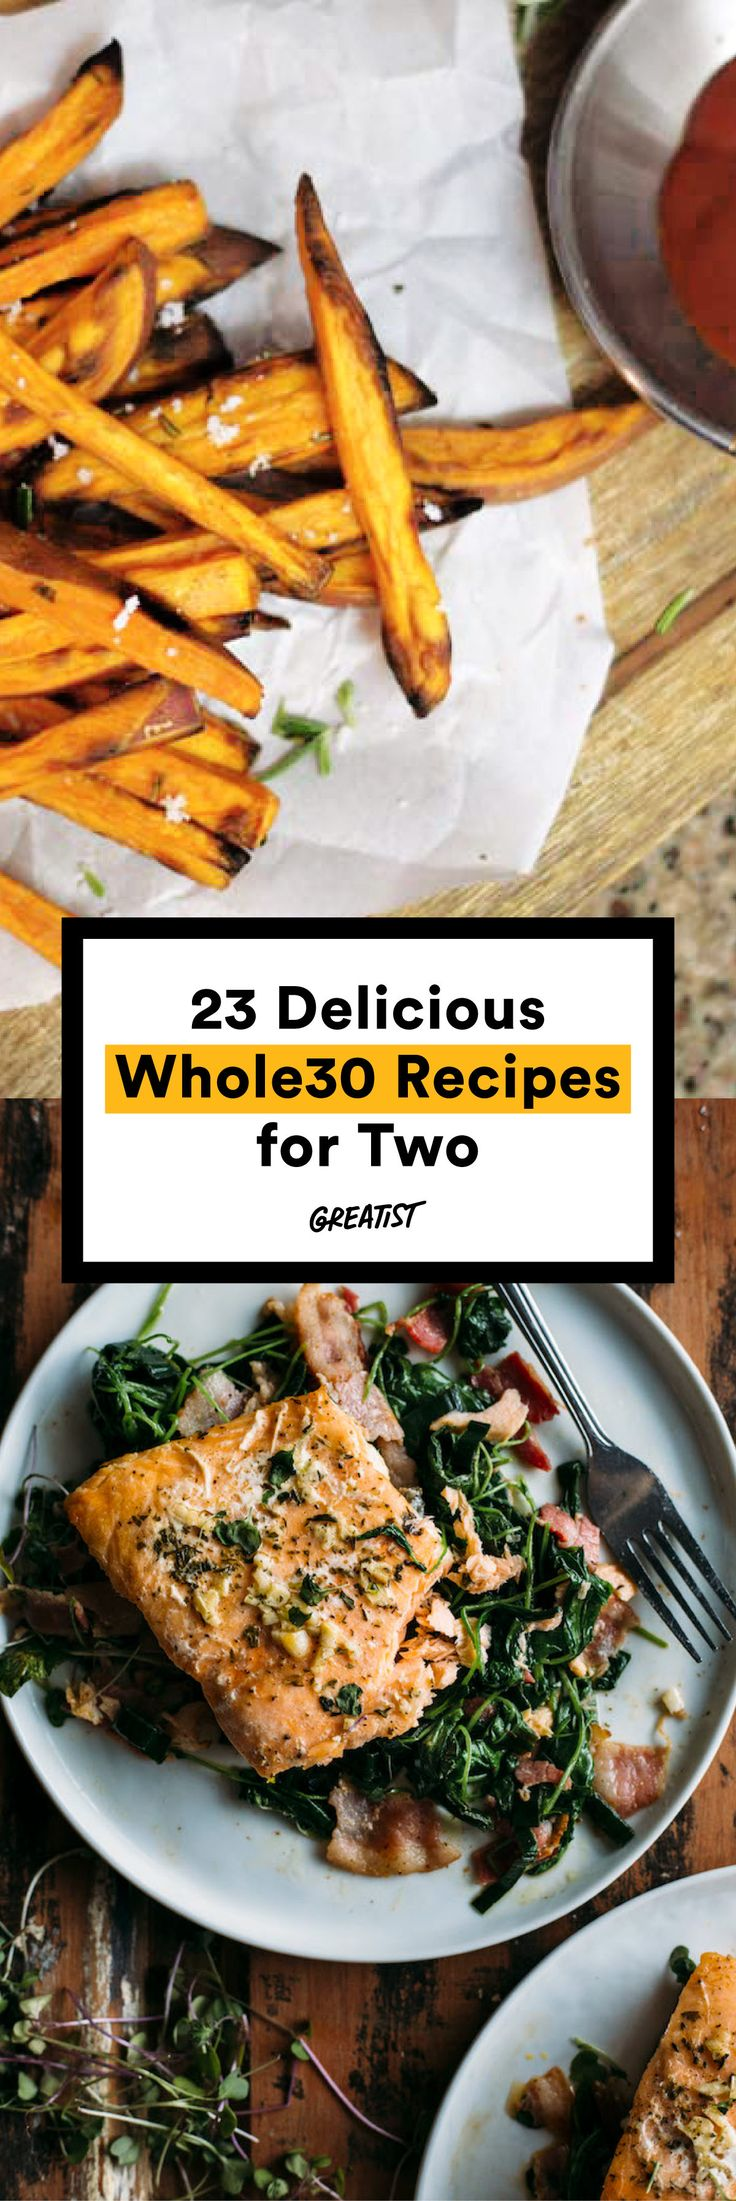 20 best whole 30 recipes images on pinterest cooking food paleo 23 whole30 recipes for two since you guys are in this together recipes for twowhole food recipeswhole foodshealthy dinner recipestop forumfinder Images